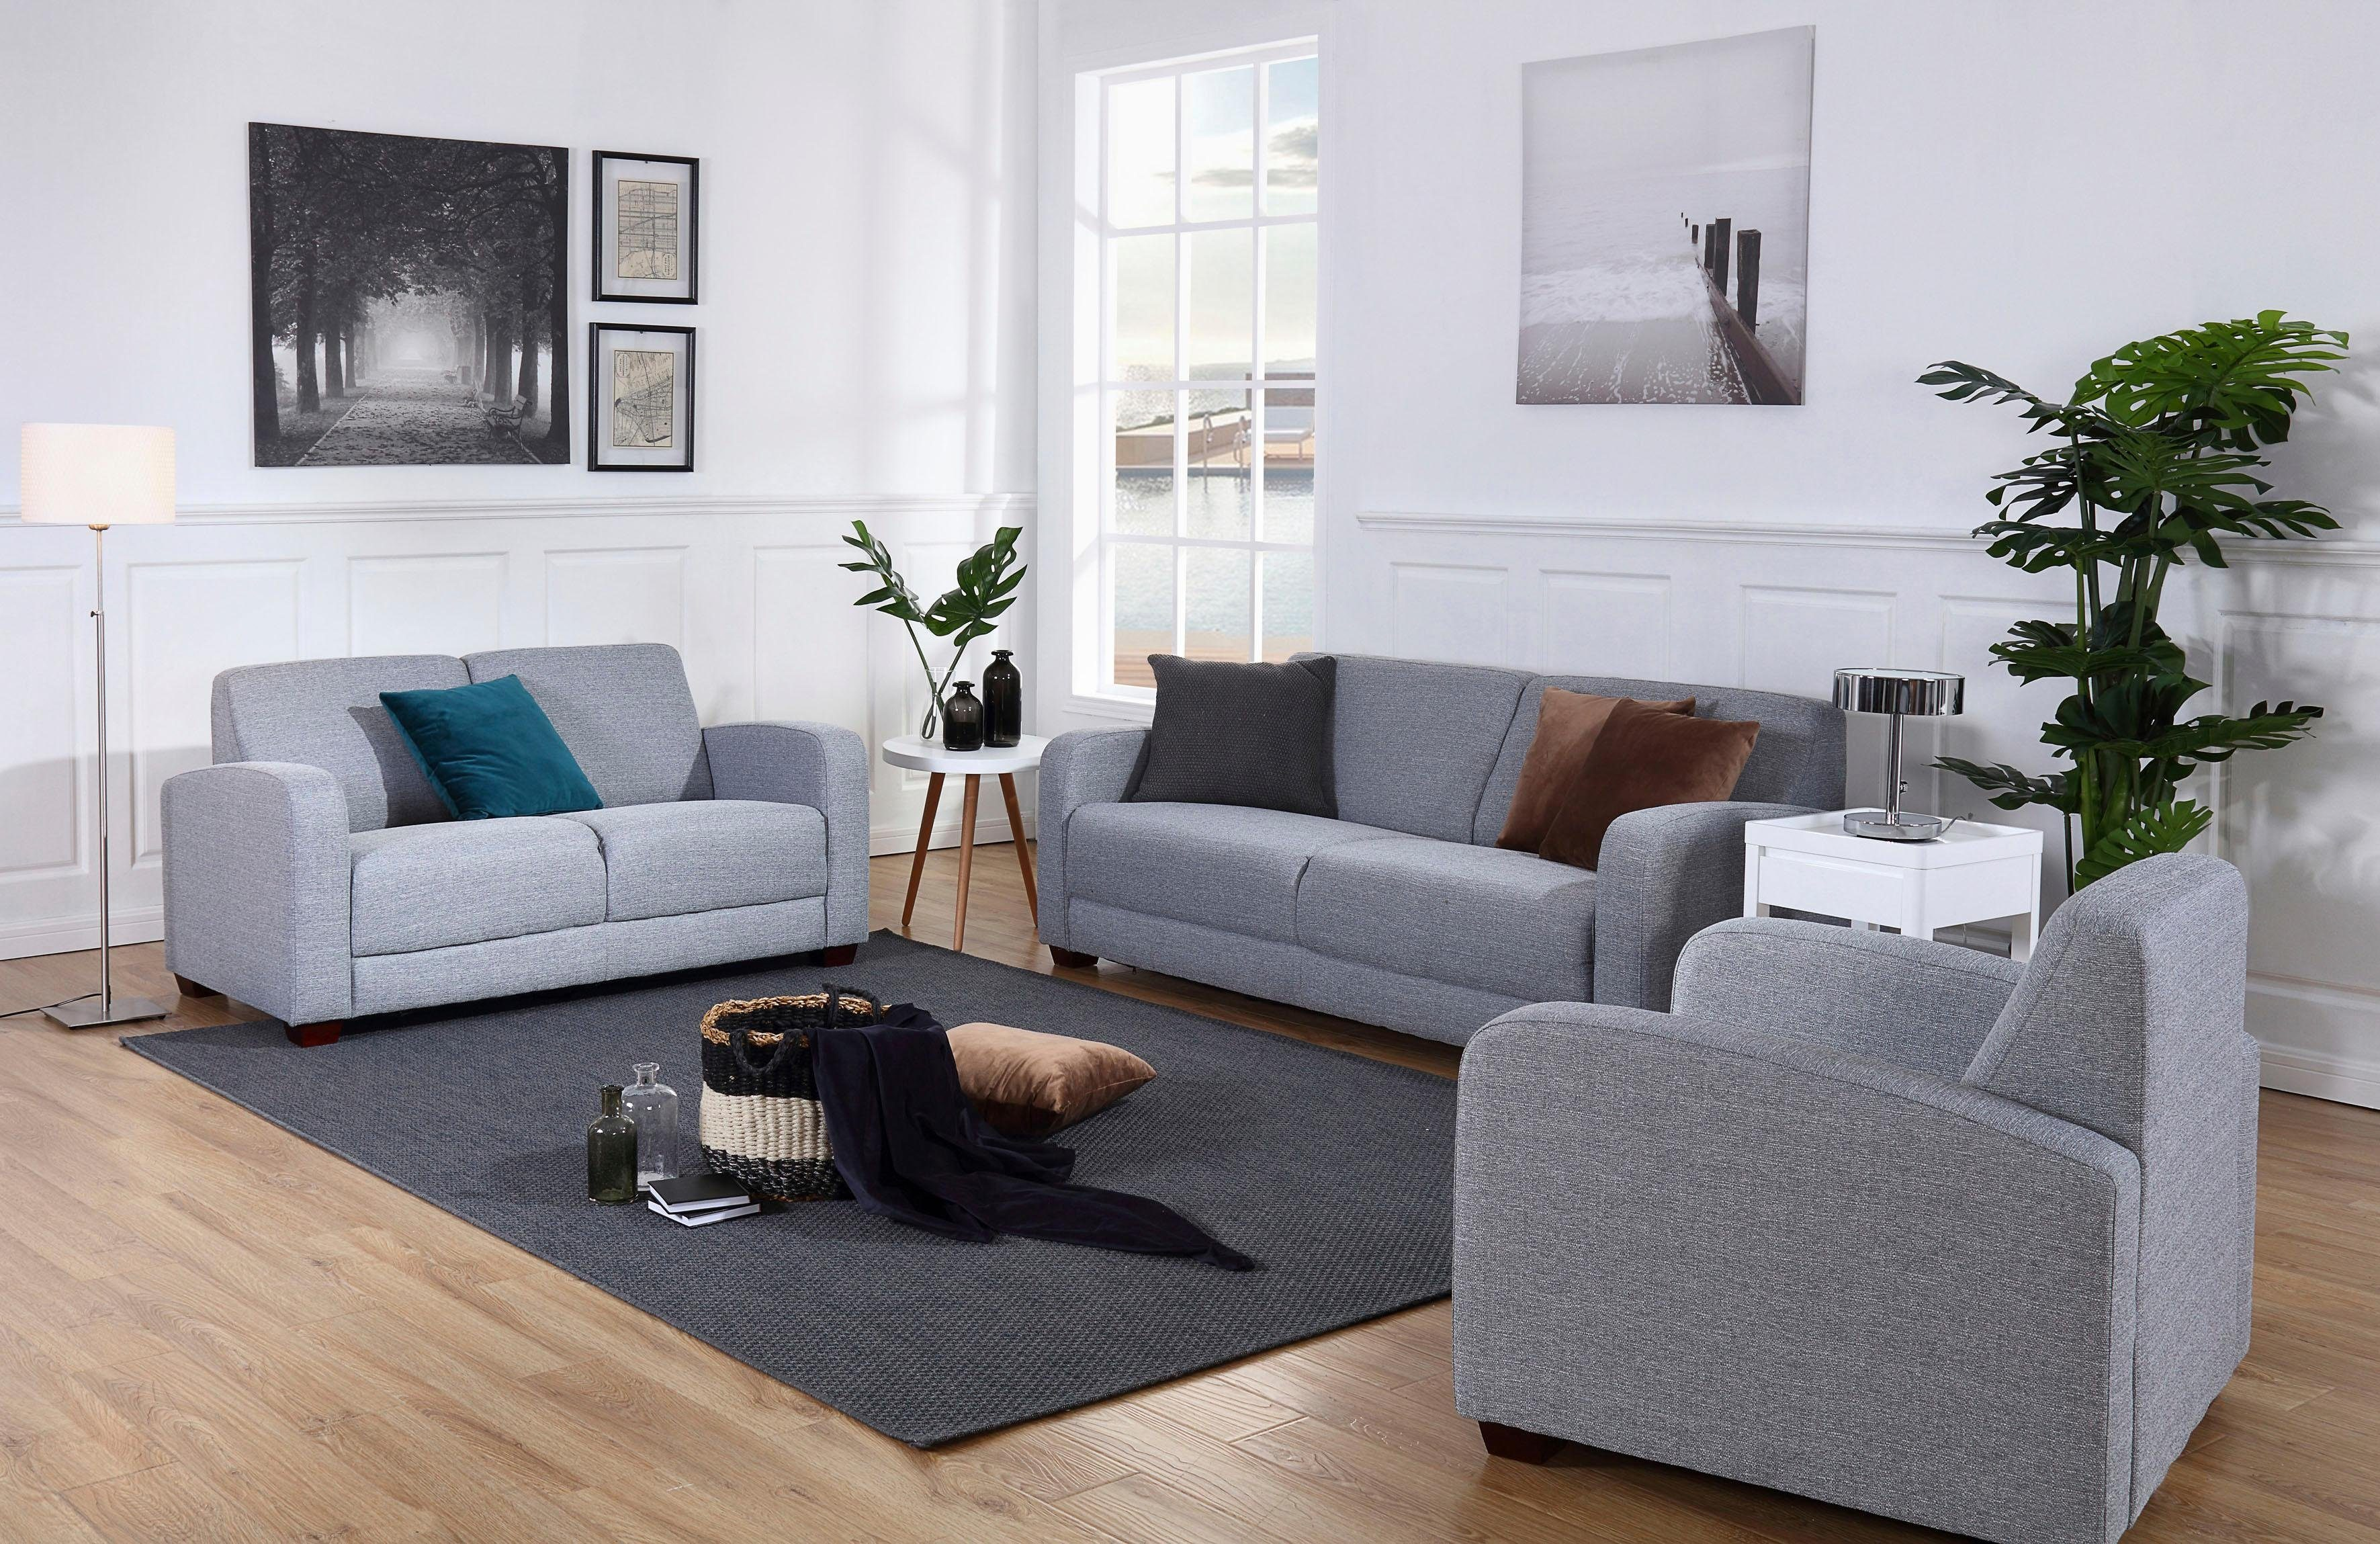 Atlantic Home Collection Couchtisch Atlantic Home Collection Ecksofa Mit Federkern Jetztgekauft